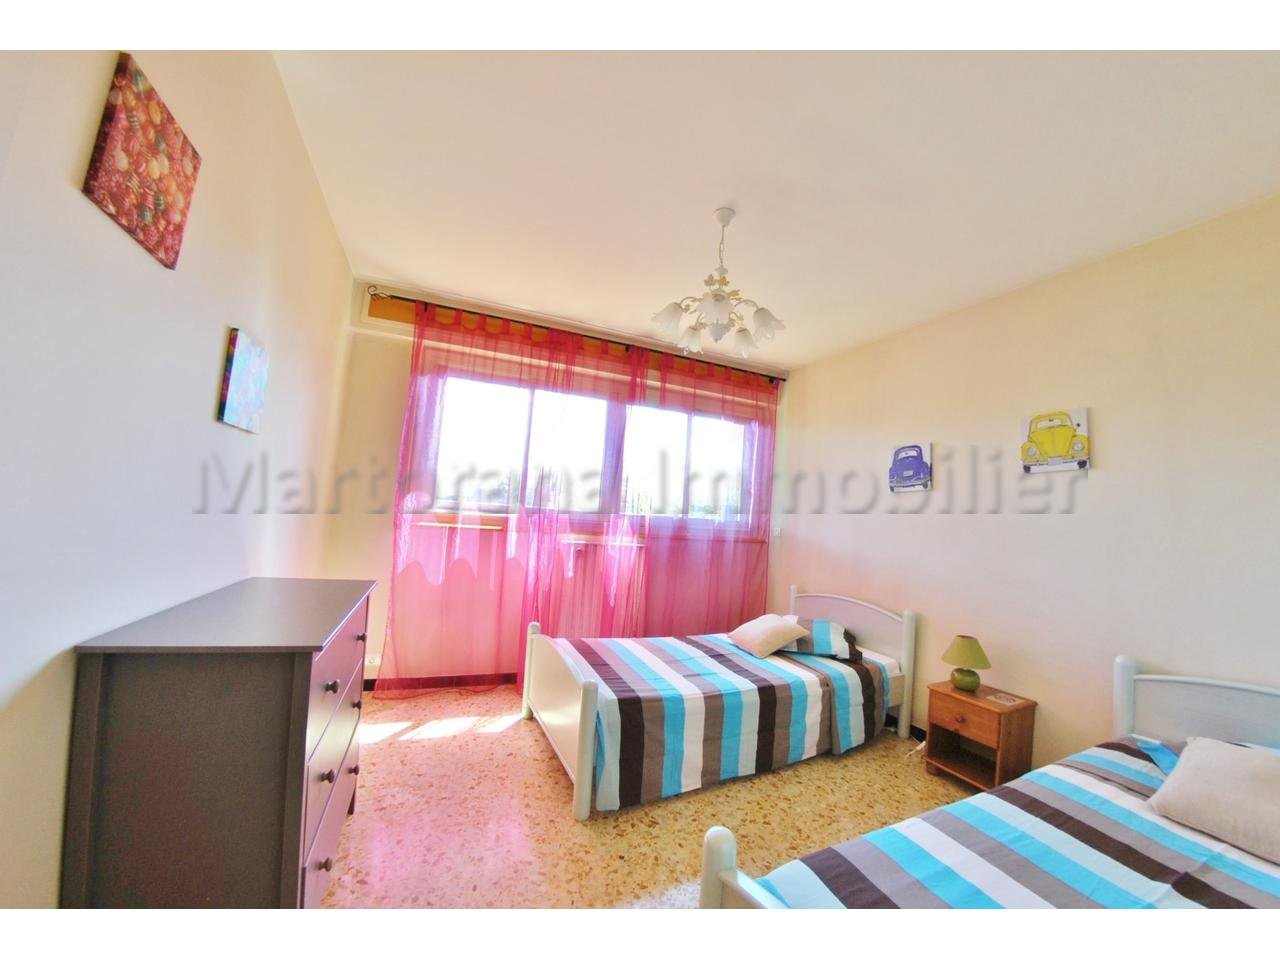 2 bedrooms apartment for 6 people with garden and pool at 5 minutes from the beaches!